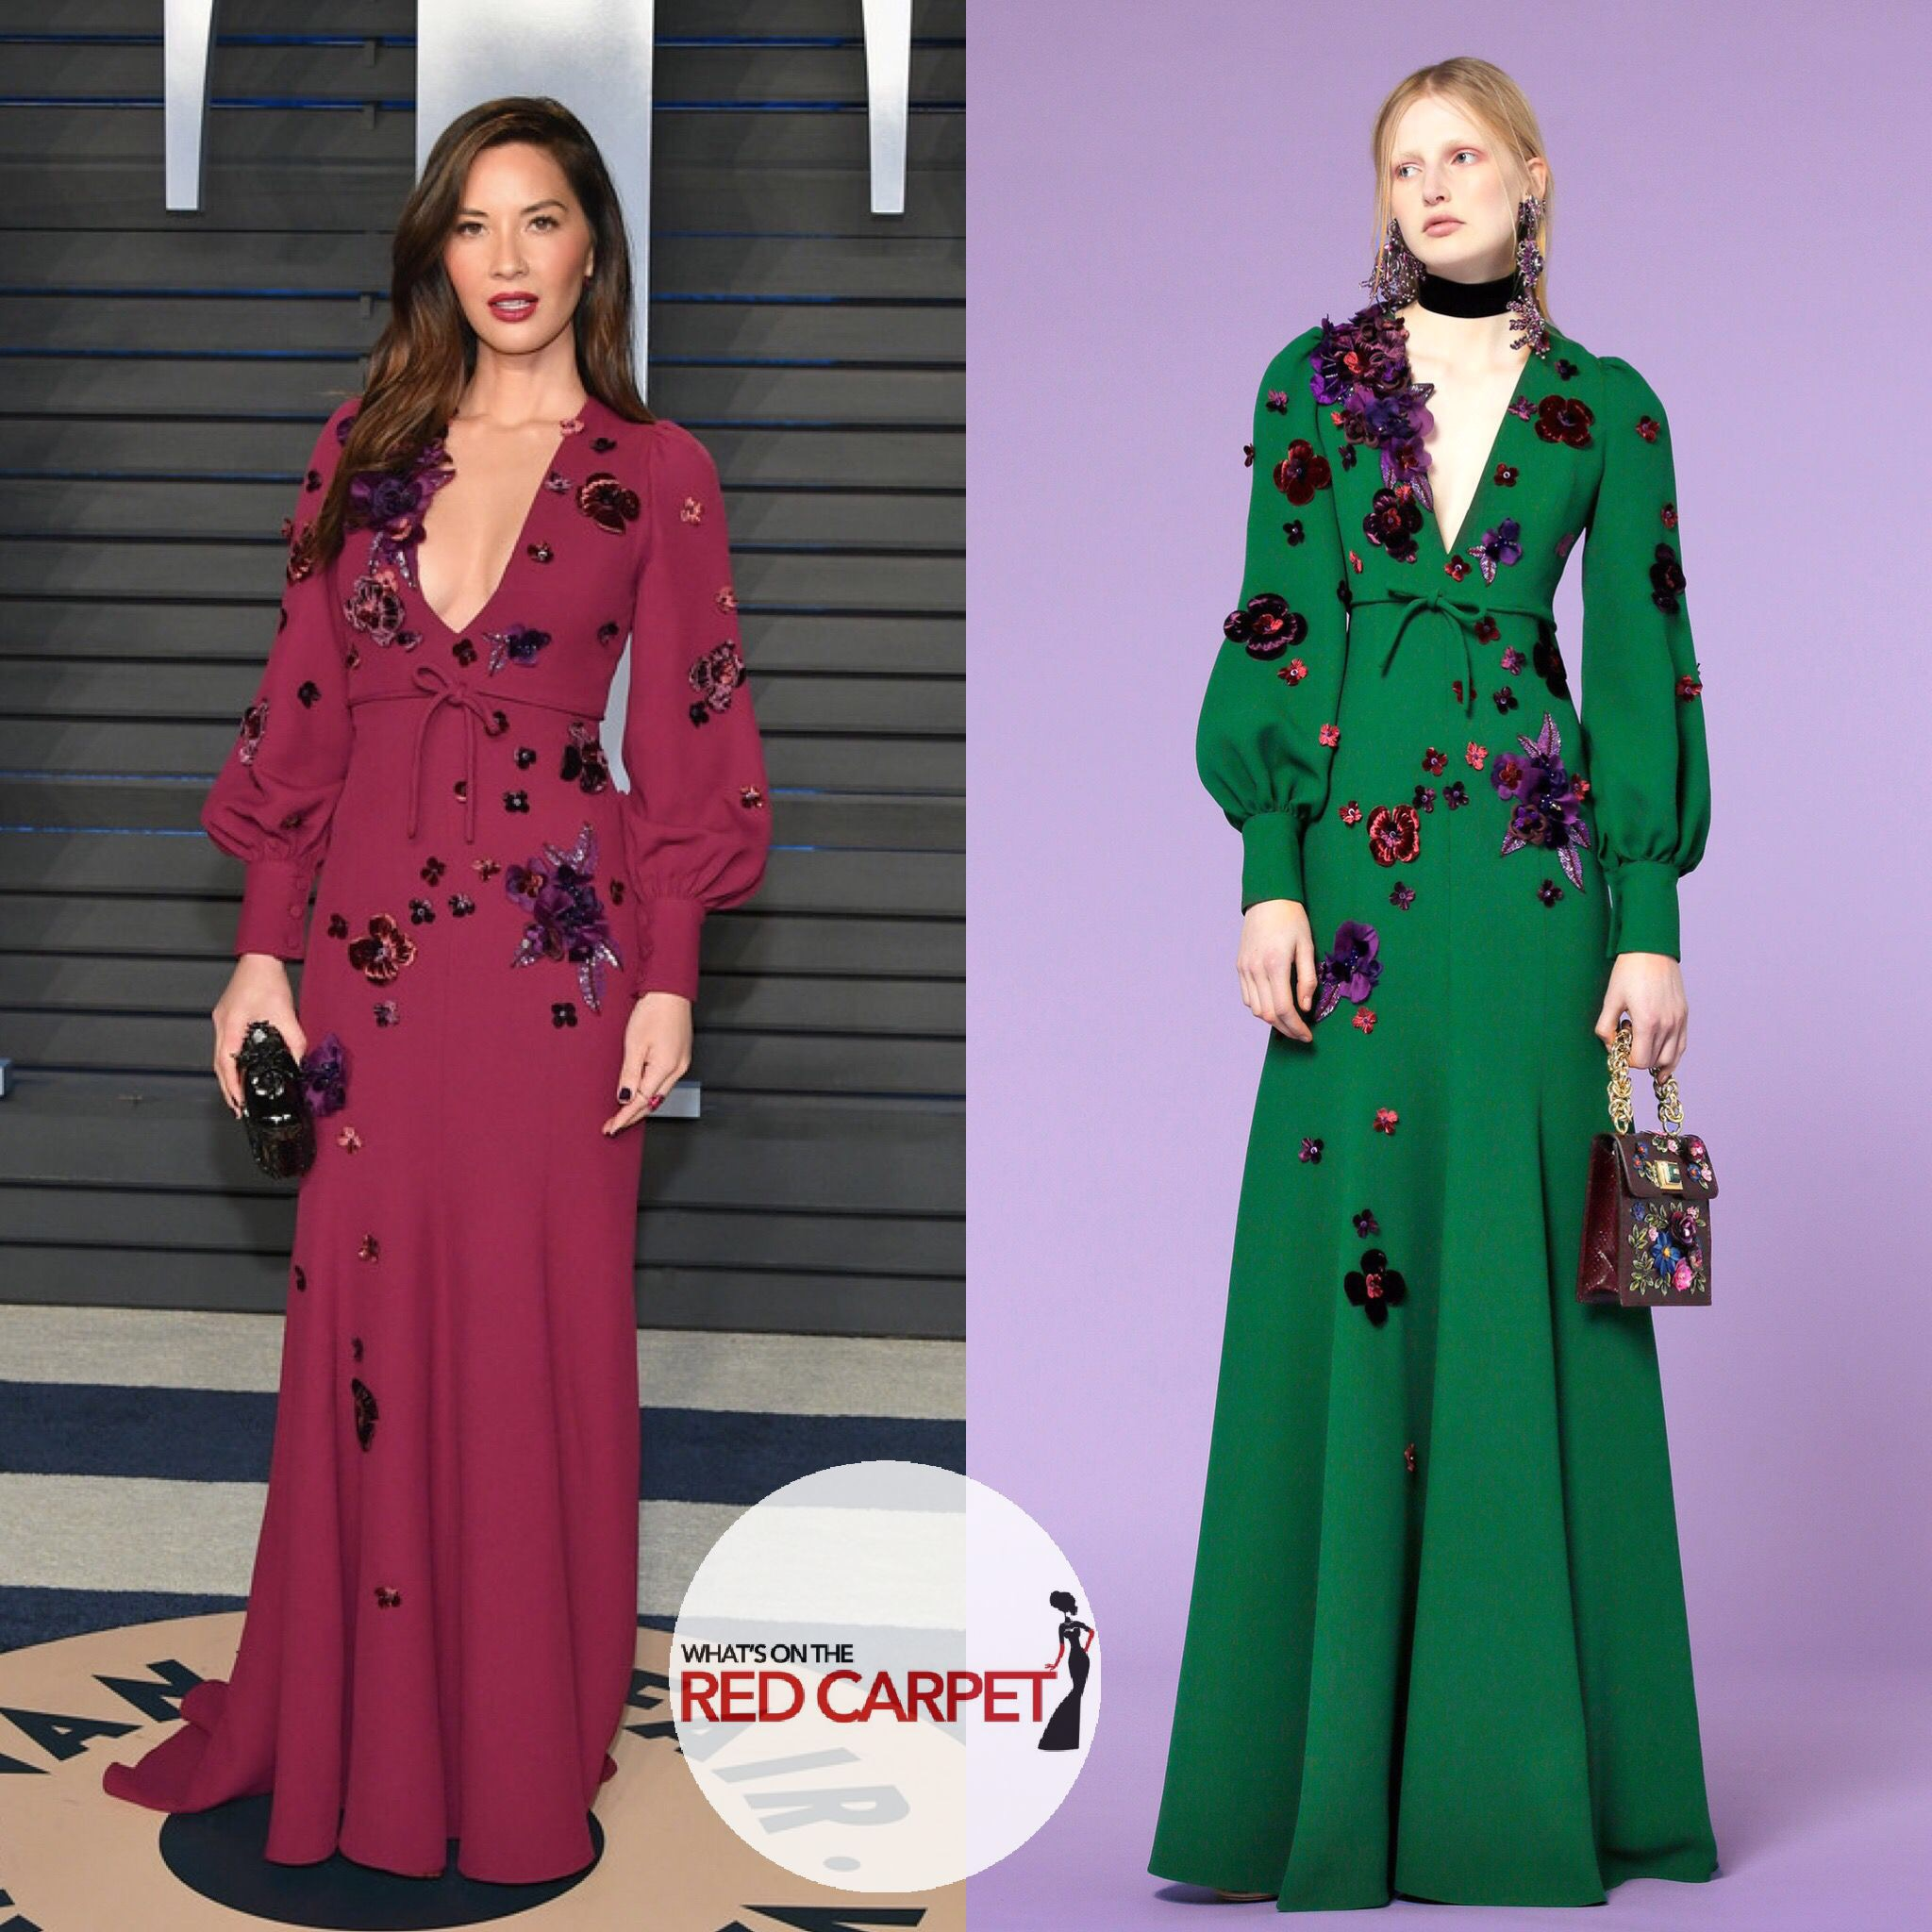 2018 oscars 90th academy awards fashion